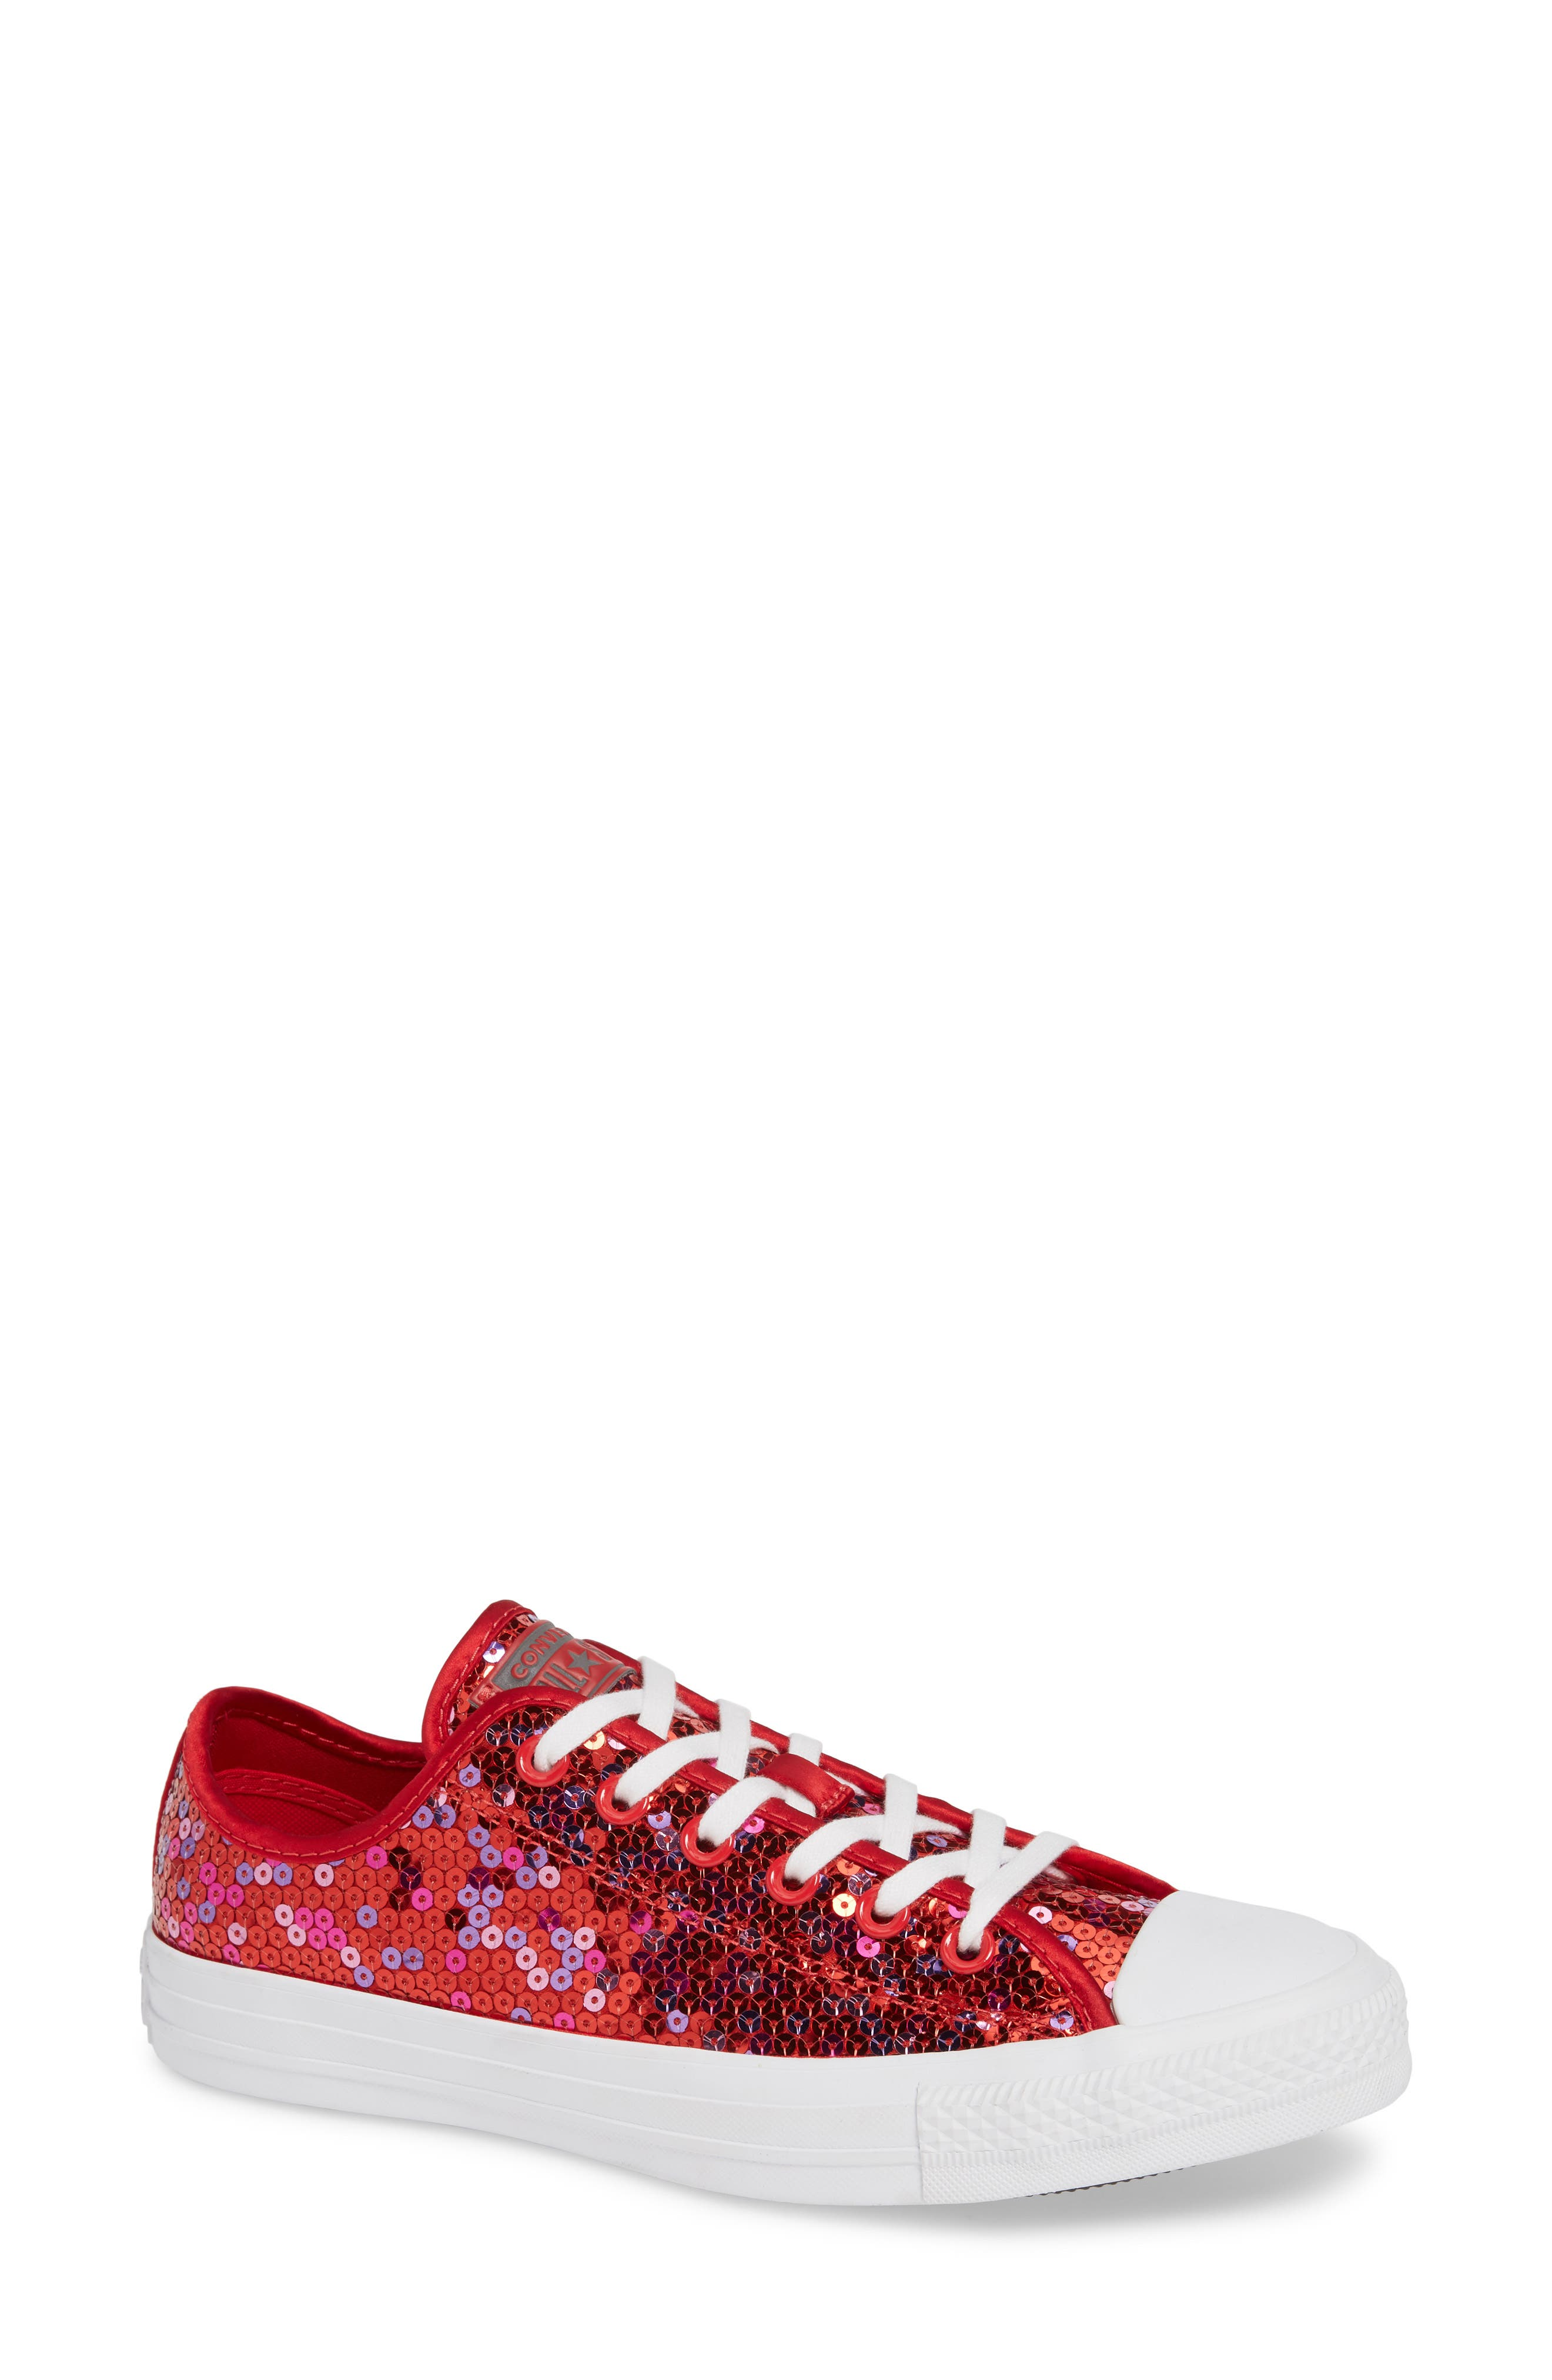 Chuck Taylor<sup>®</sup> All Star<sup>®</sup> Sequin Low Top Sneaker,                         Main,                         color, RED CHERRY SEQUINS